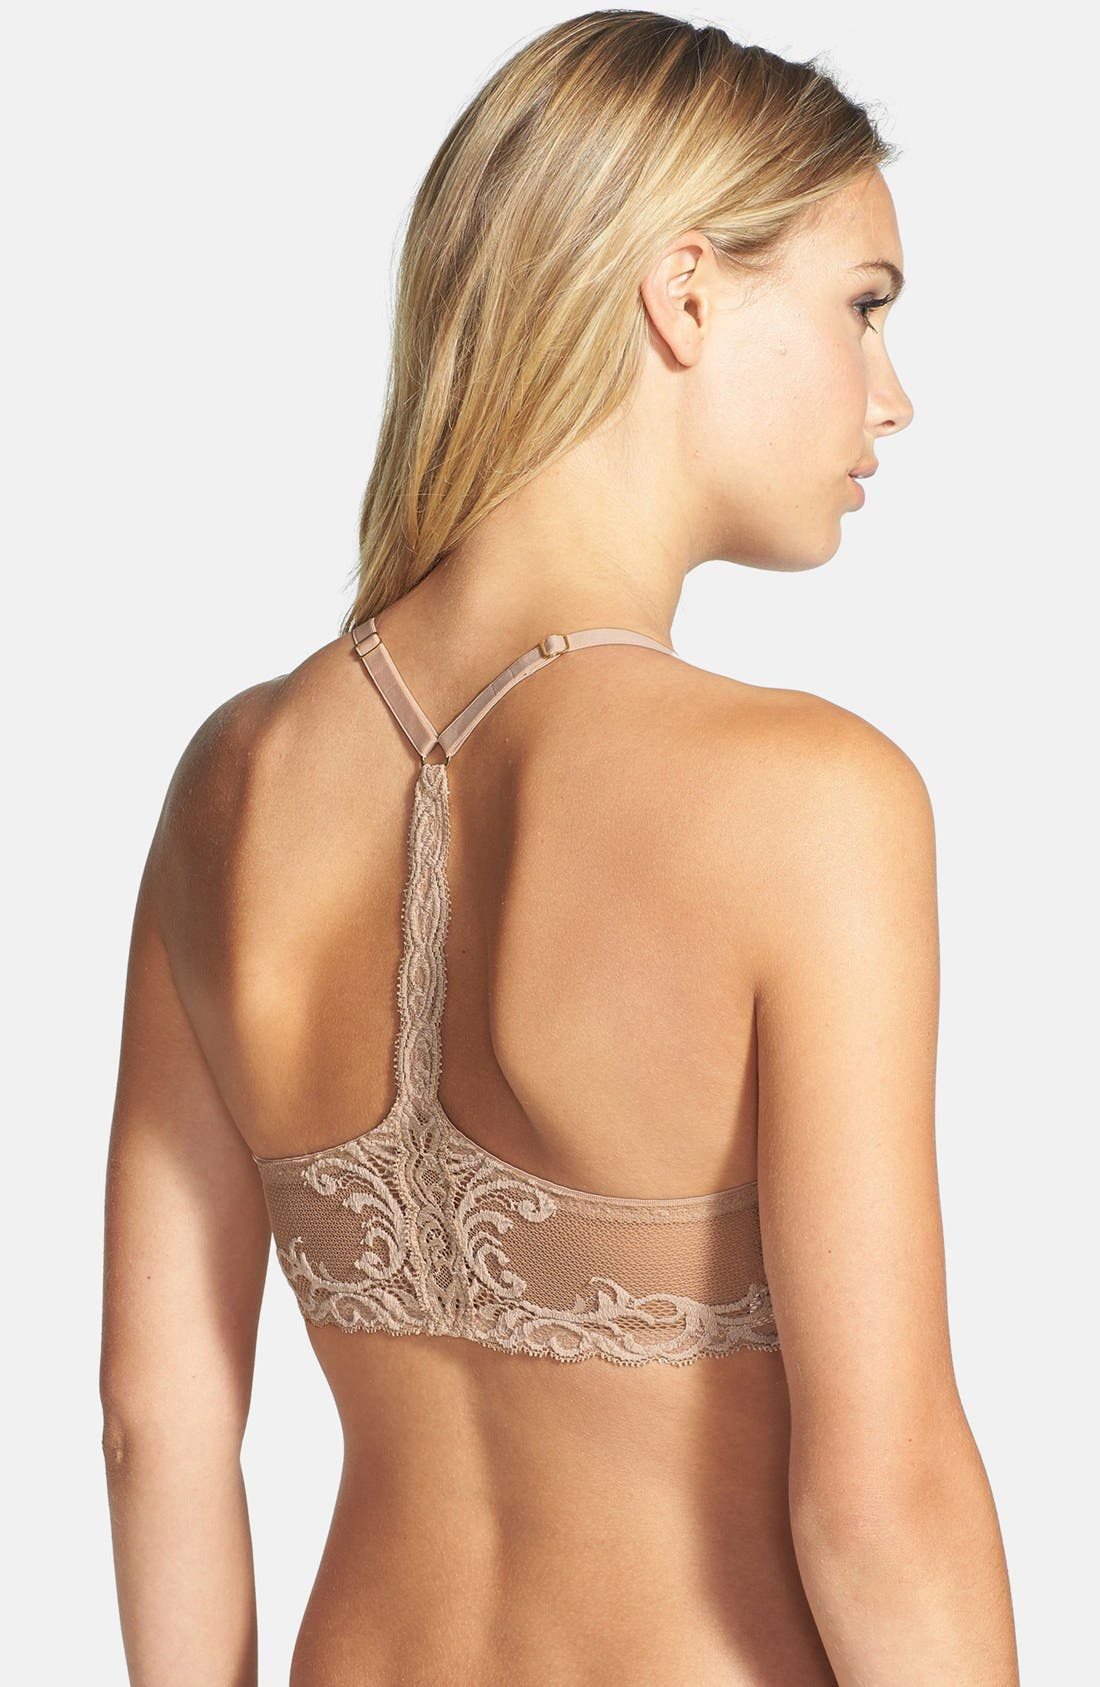 Alternate Image 1 Selected - Natori Feathers Contour Underwire T-Back Bra